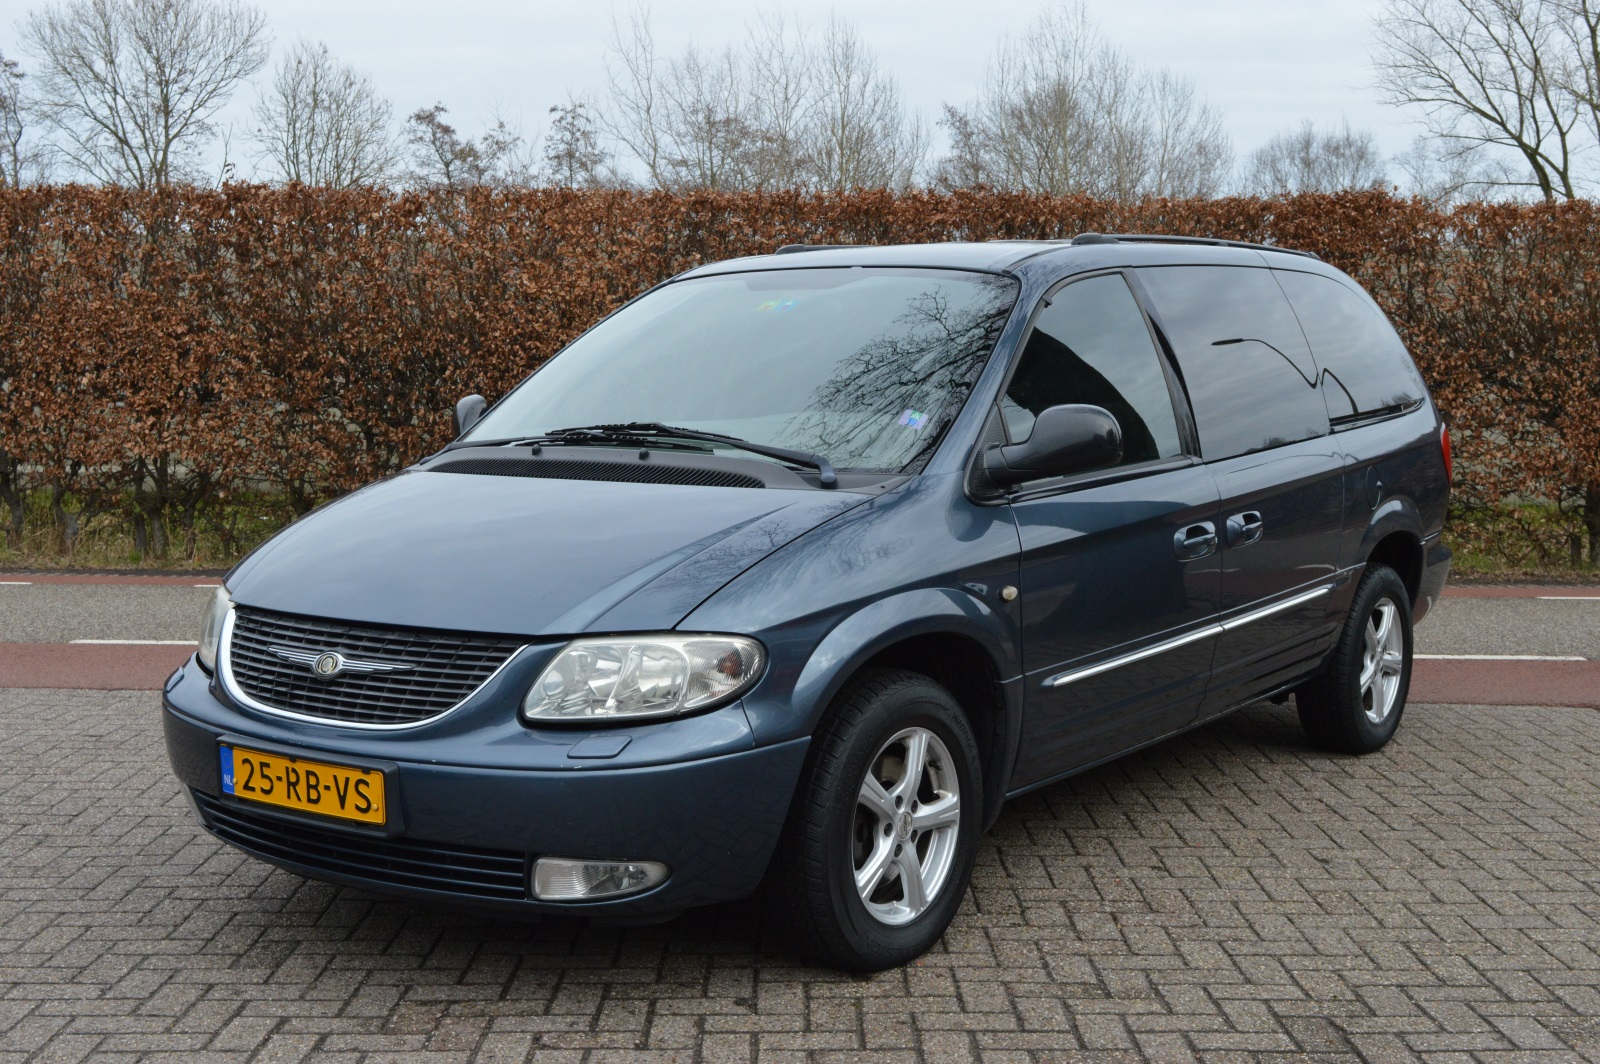 chrysler grand voyager v6 lx autobedrijf slager. Black Bedroom Furniture Sets. Home Design Ideas